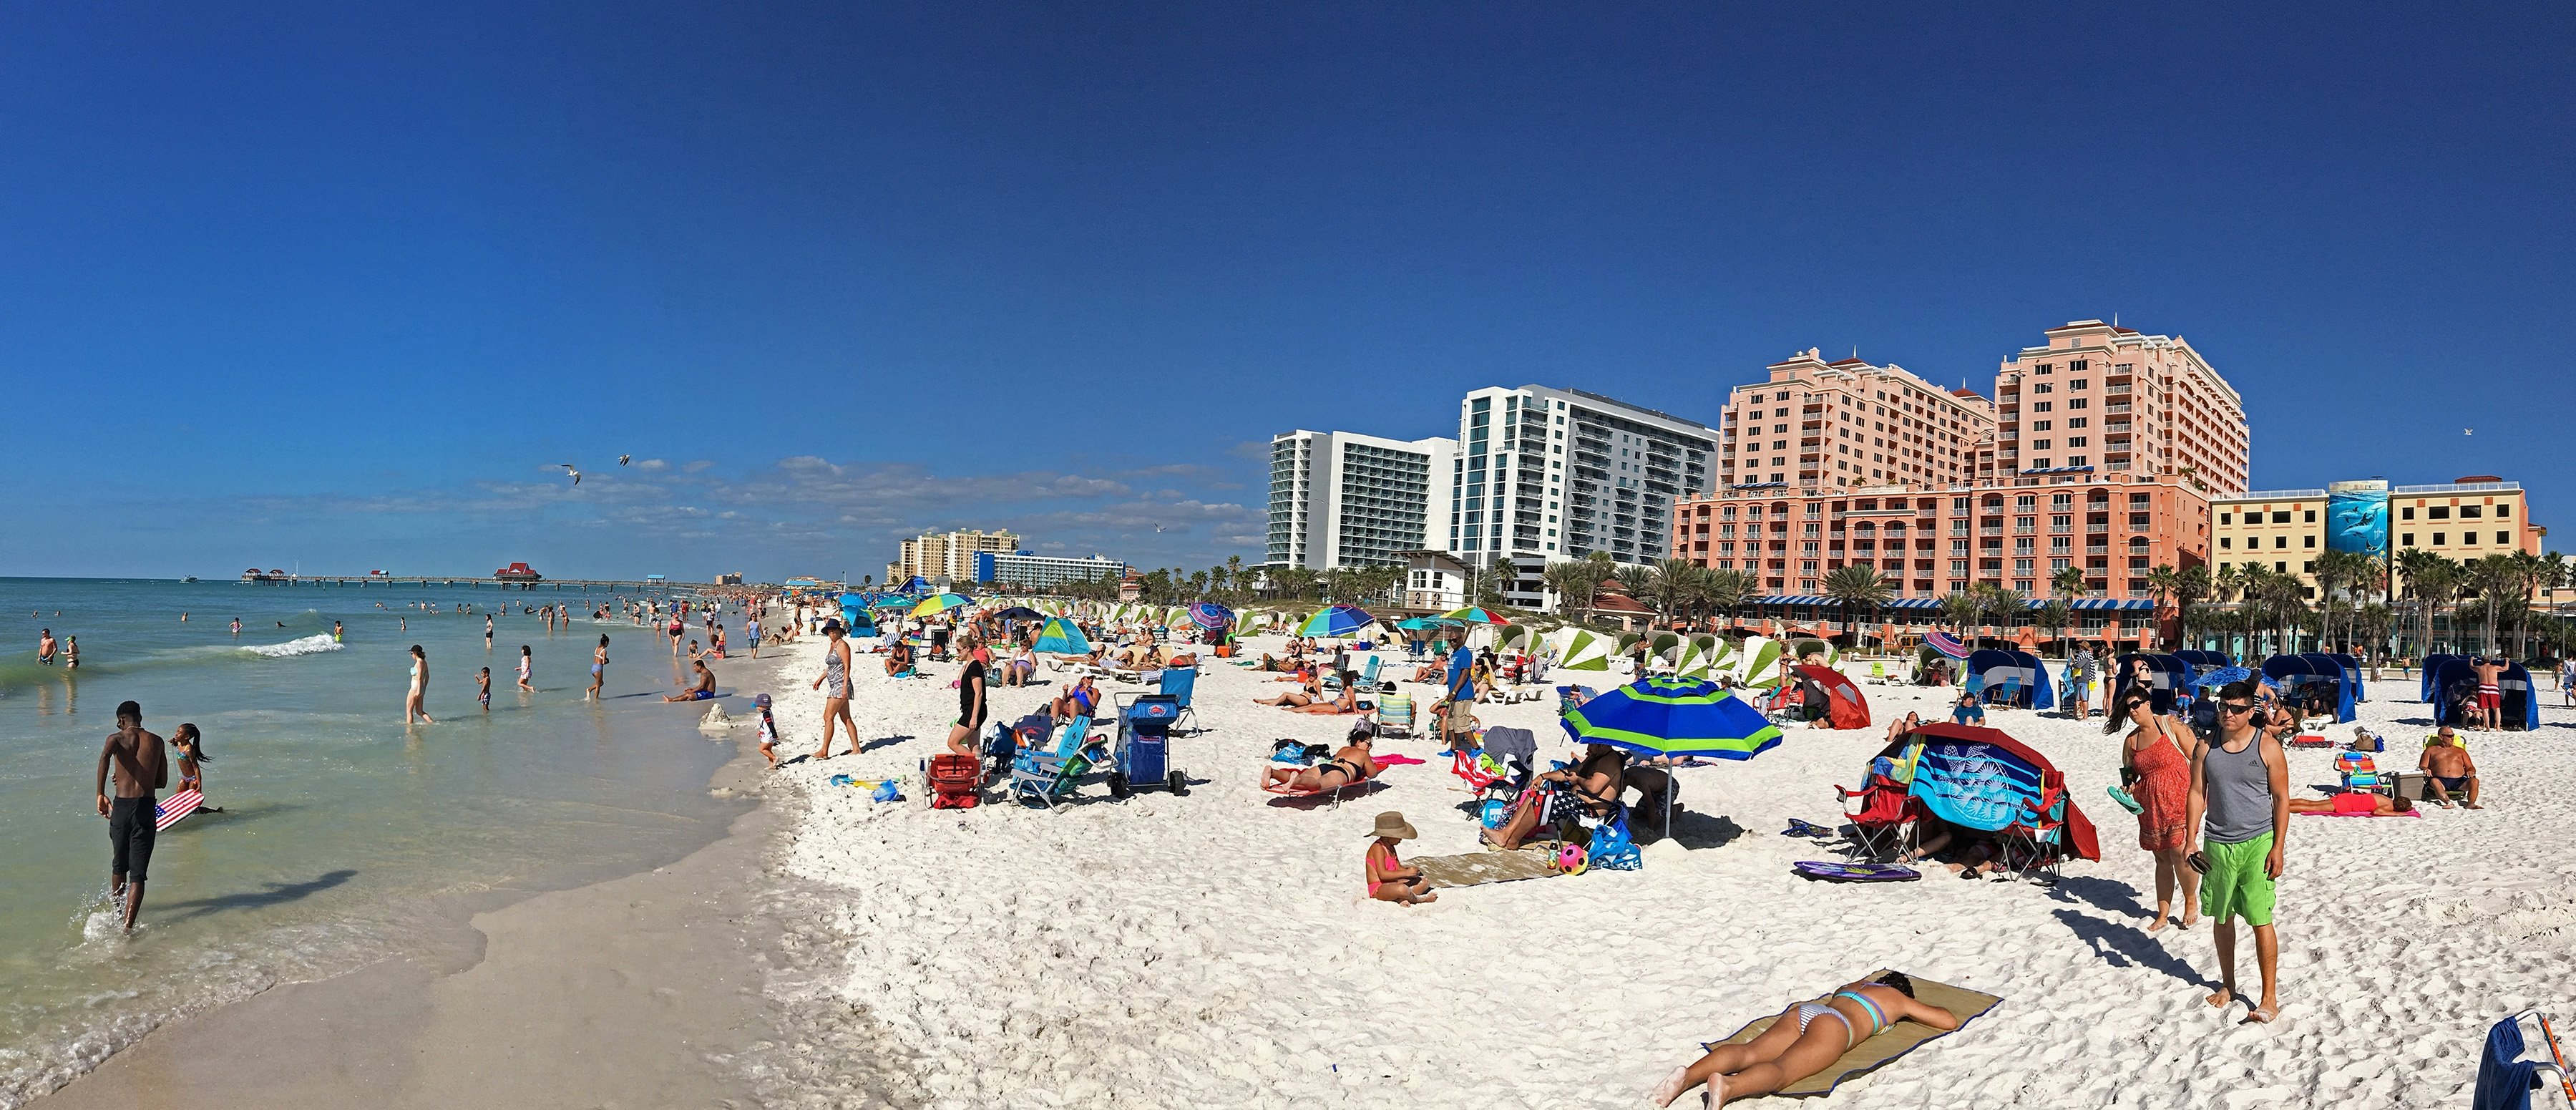 Hd stream from atop the famous frenchy's rockaway grill on one of america's top beaches!enjoy our view of clearwater beach on the west coast of florida. Clearwater Beach Ranked No 1 By Tripadvisor S Best Beaches 2019